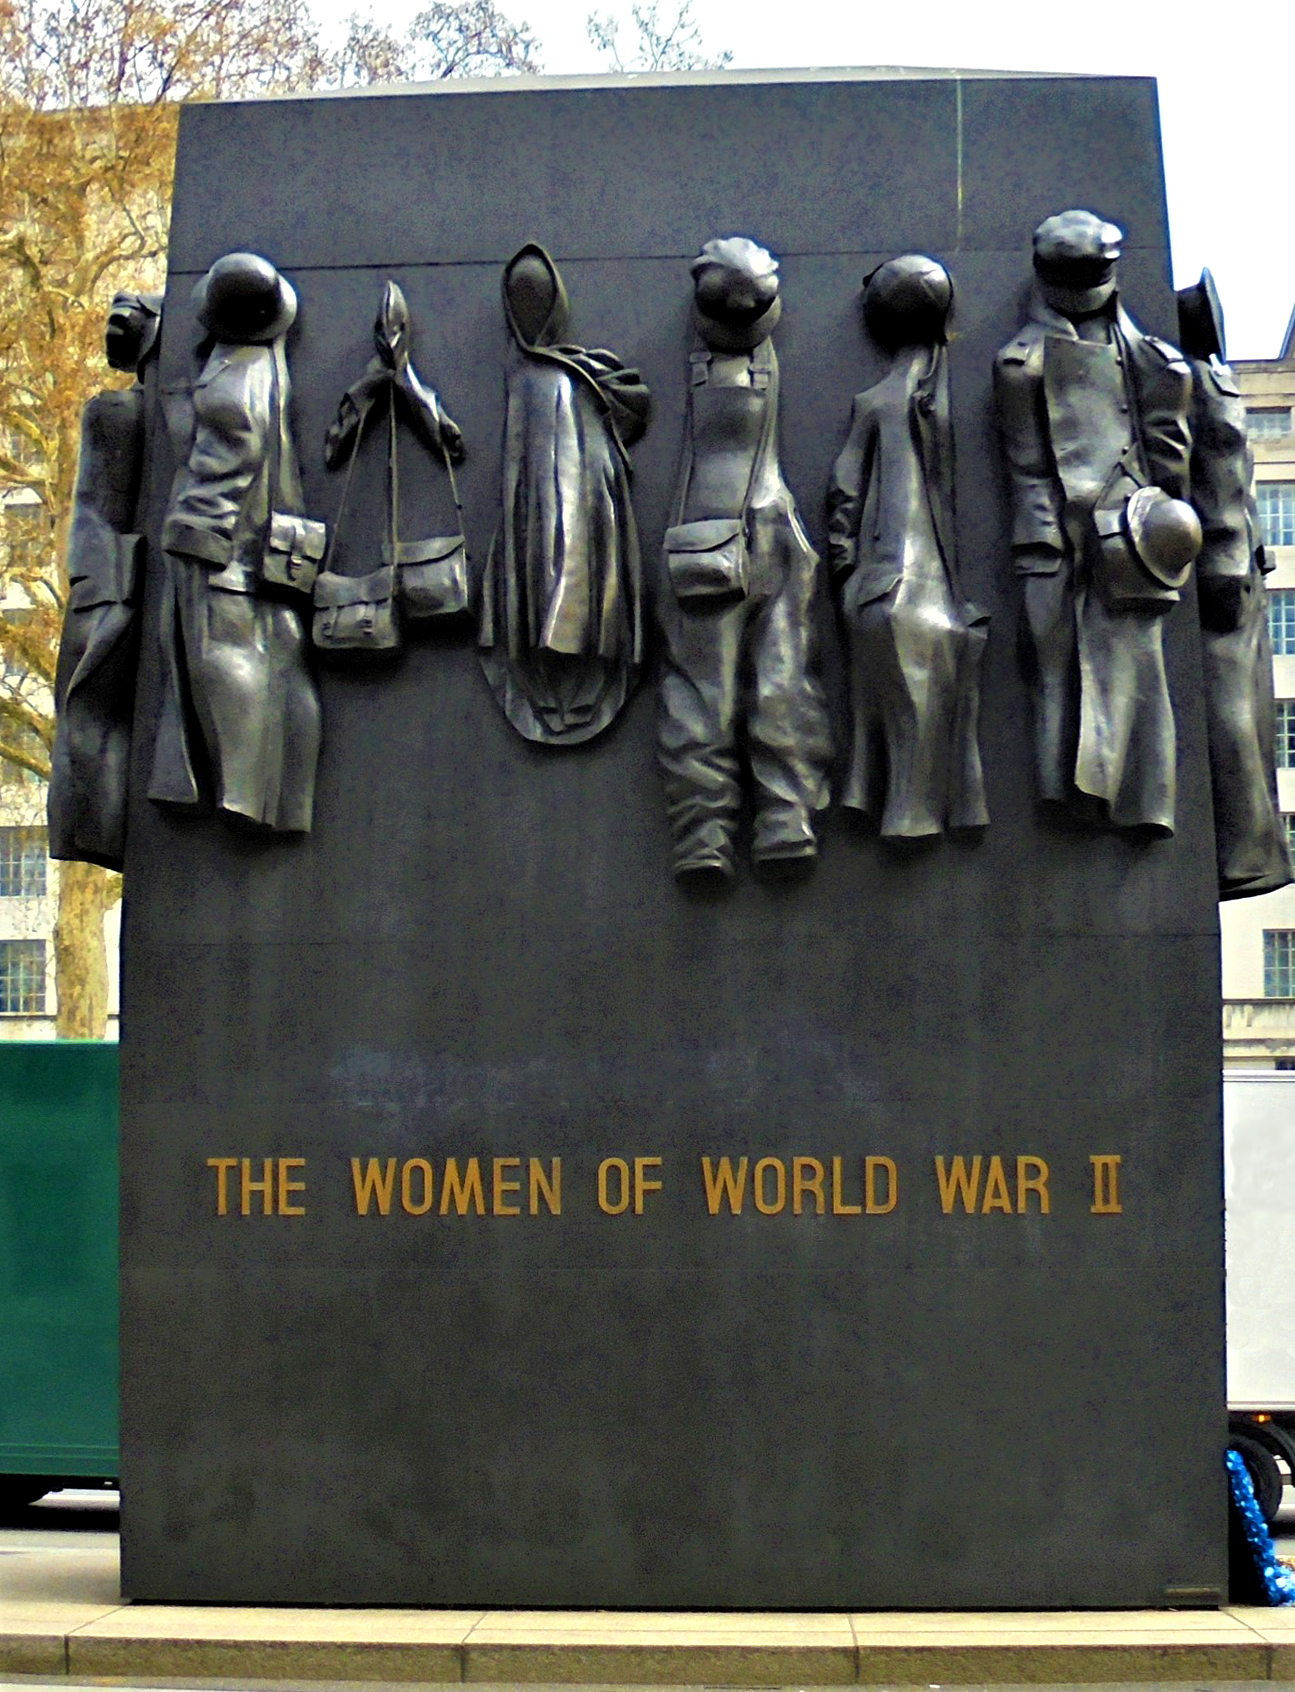 Monument to the Women of World War II, Whitehall Westminster London